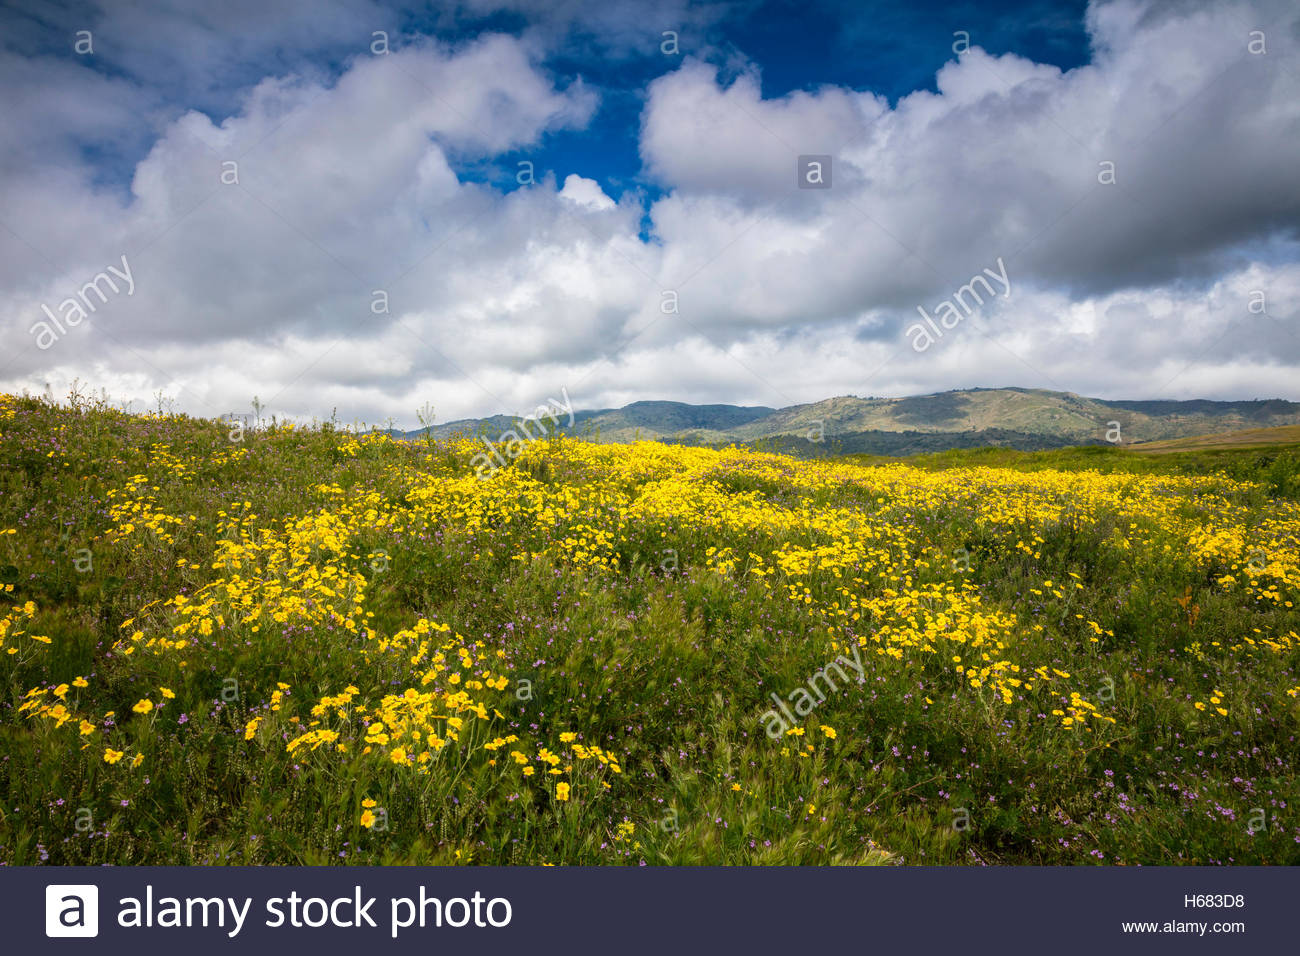 A hillside over Tehachapi, California, is lush with yellow and violet wildflowers as a spring rainstorm approaches. - Stock Image